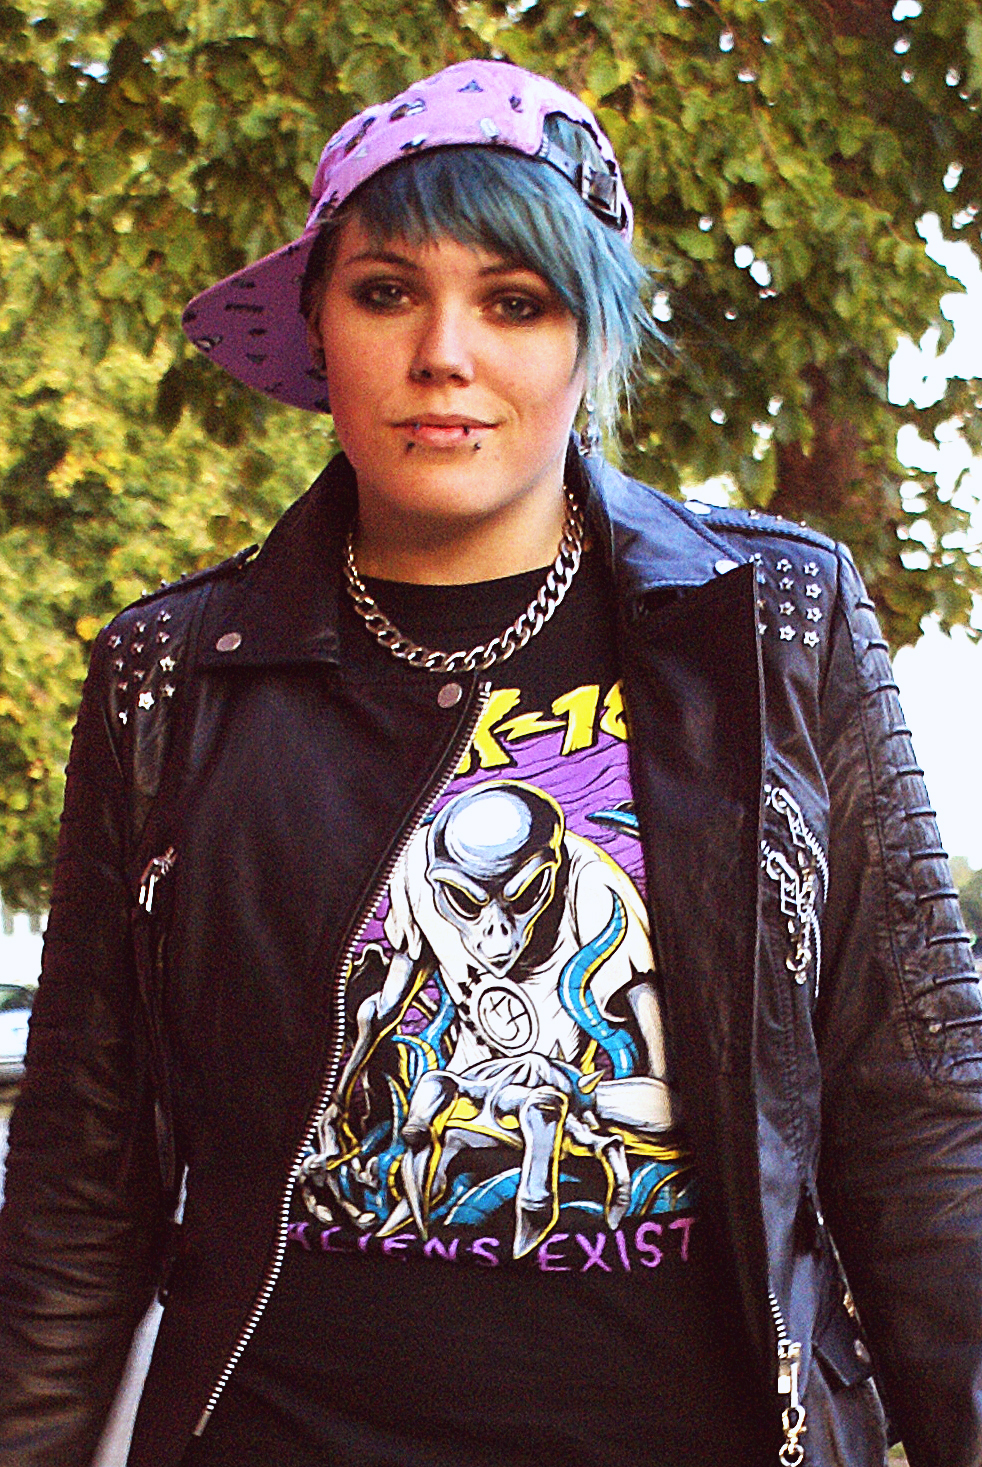 tripp nyc lightning bolt jeans fallen shoes cyan blink aliens exist shirt glamour kills holiday cap lavender purple leather jacket real biker moto chain bandshirt rock